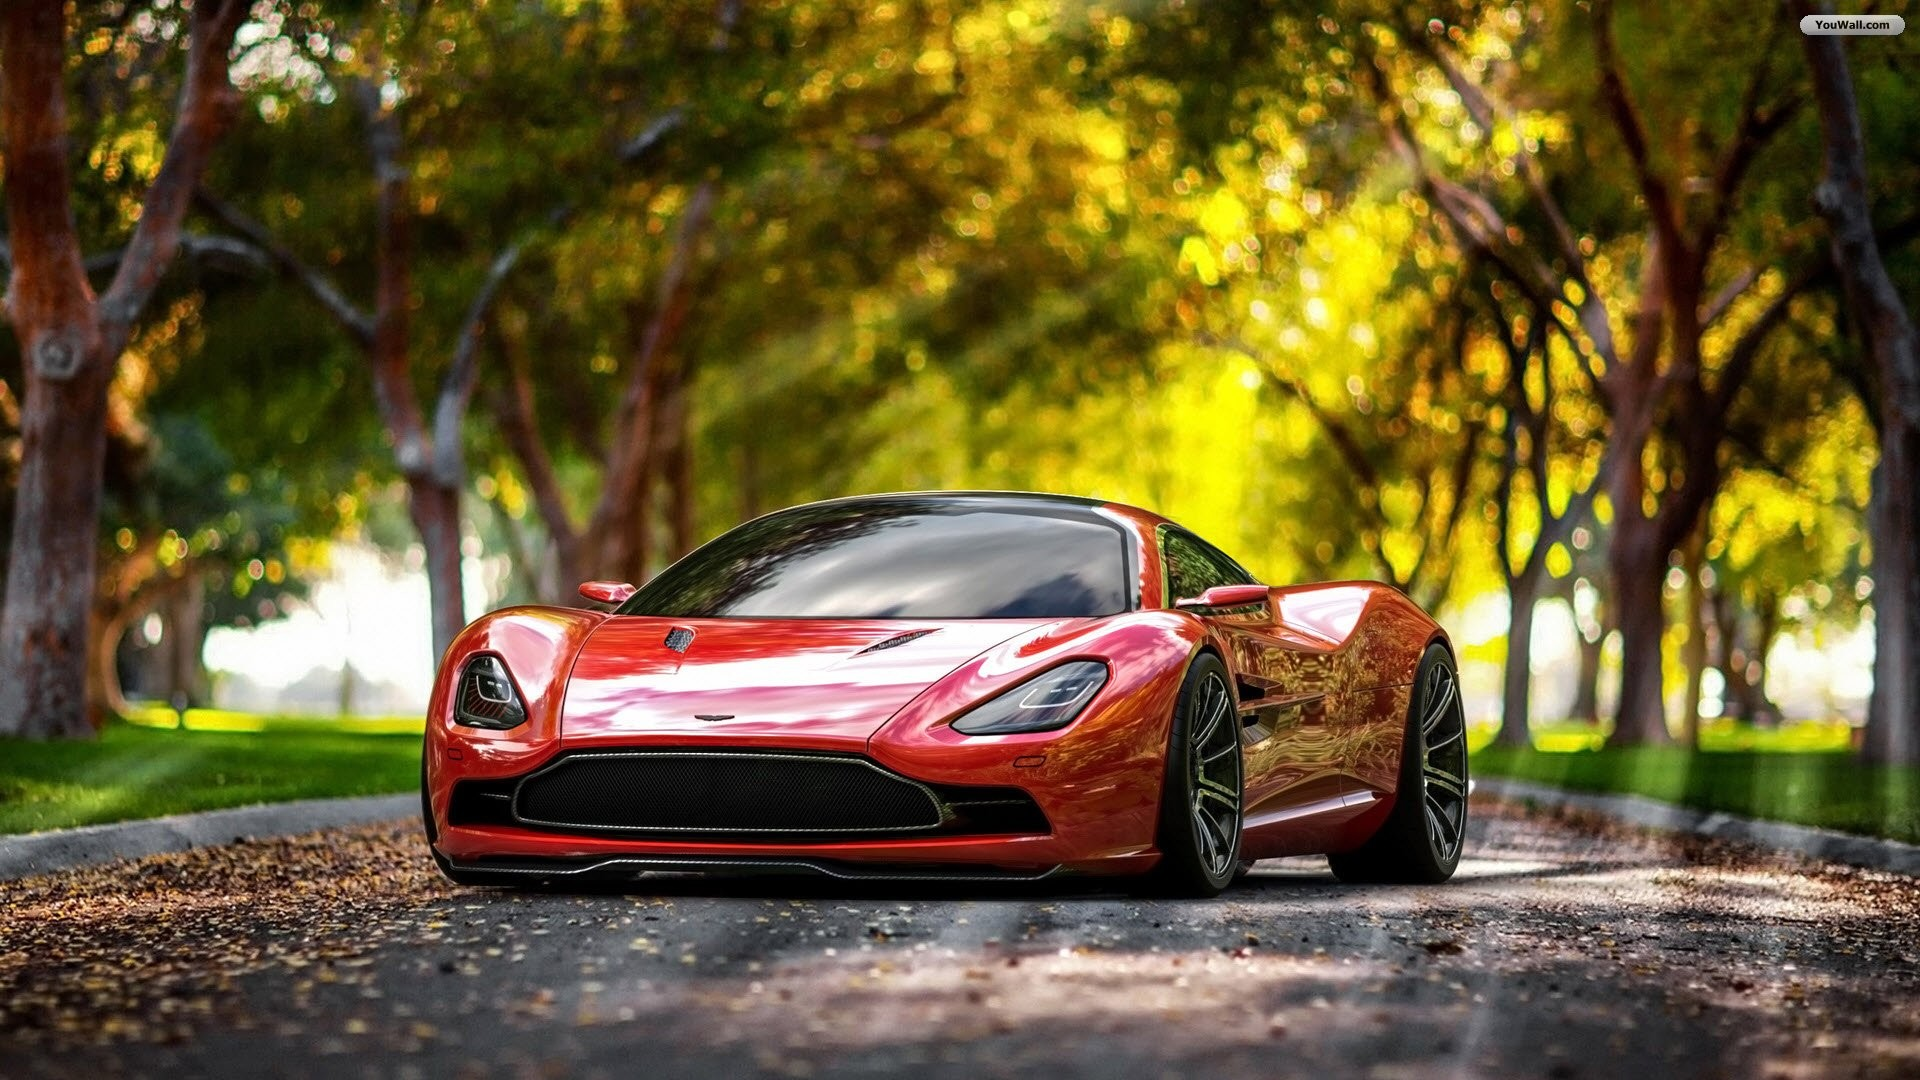 73 Sports Car Wallpapers on WallpaperPlay 1920x1080